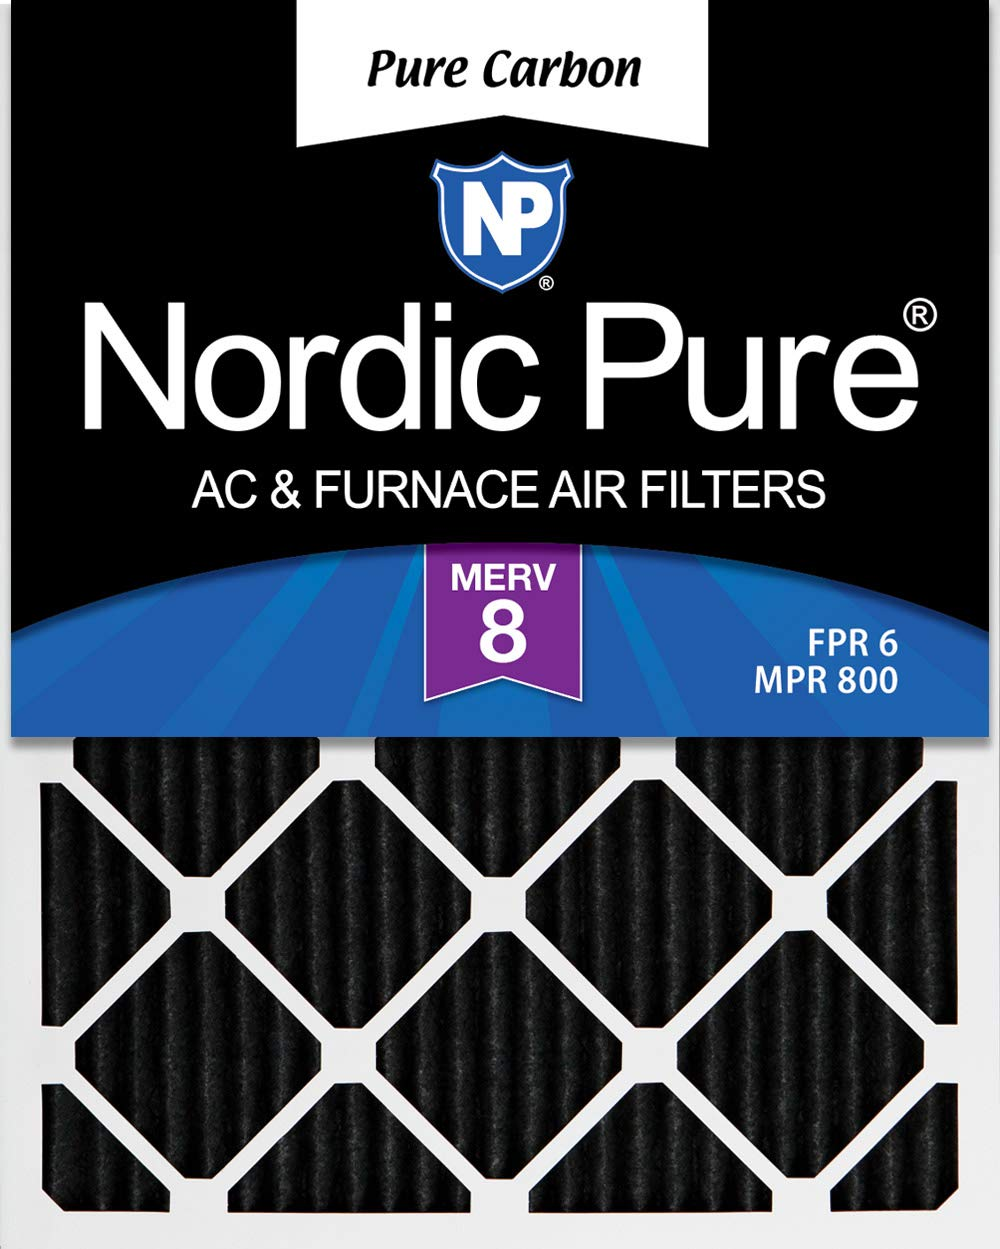 Nordic Pure 16x24x1 MERV 8 Pure Carbon Pleated Odor Reduction AC Furnace Air Filters 2 Pack